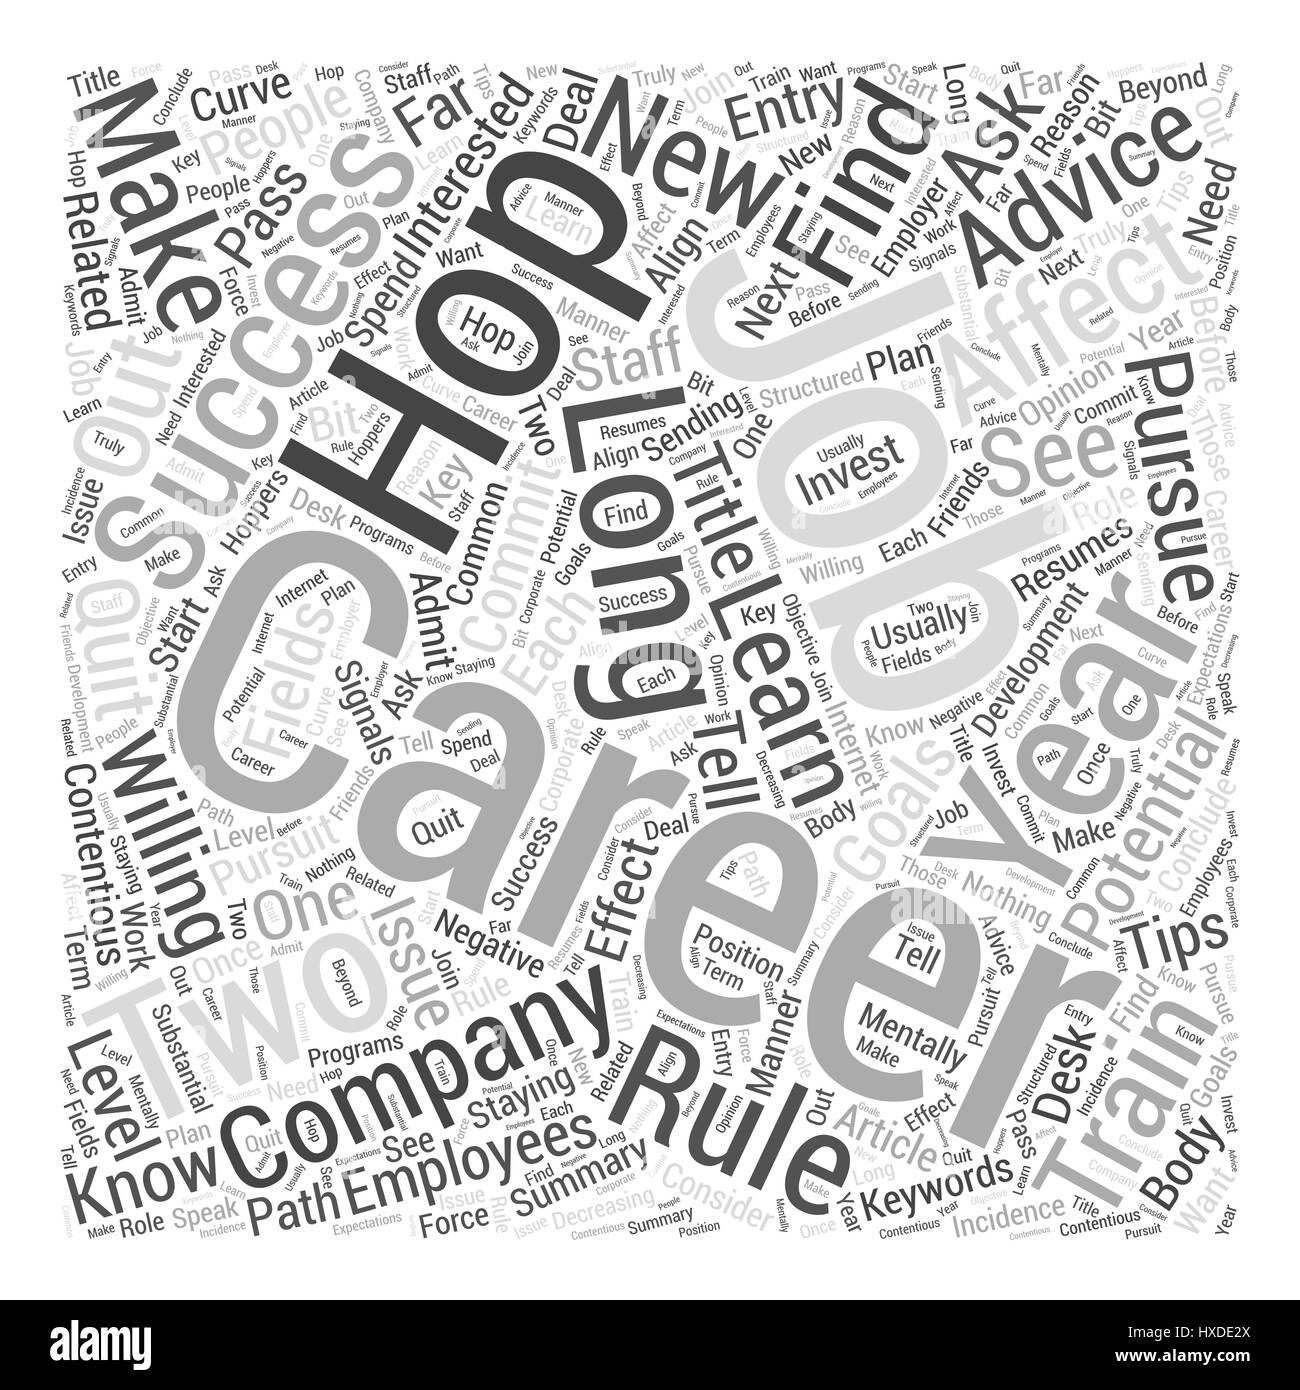 Job hopping How It Affects Your Career Success Word Cloud Concept Stock Vector